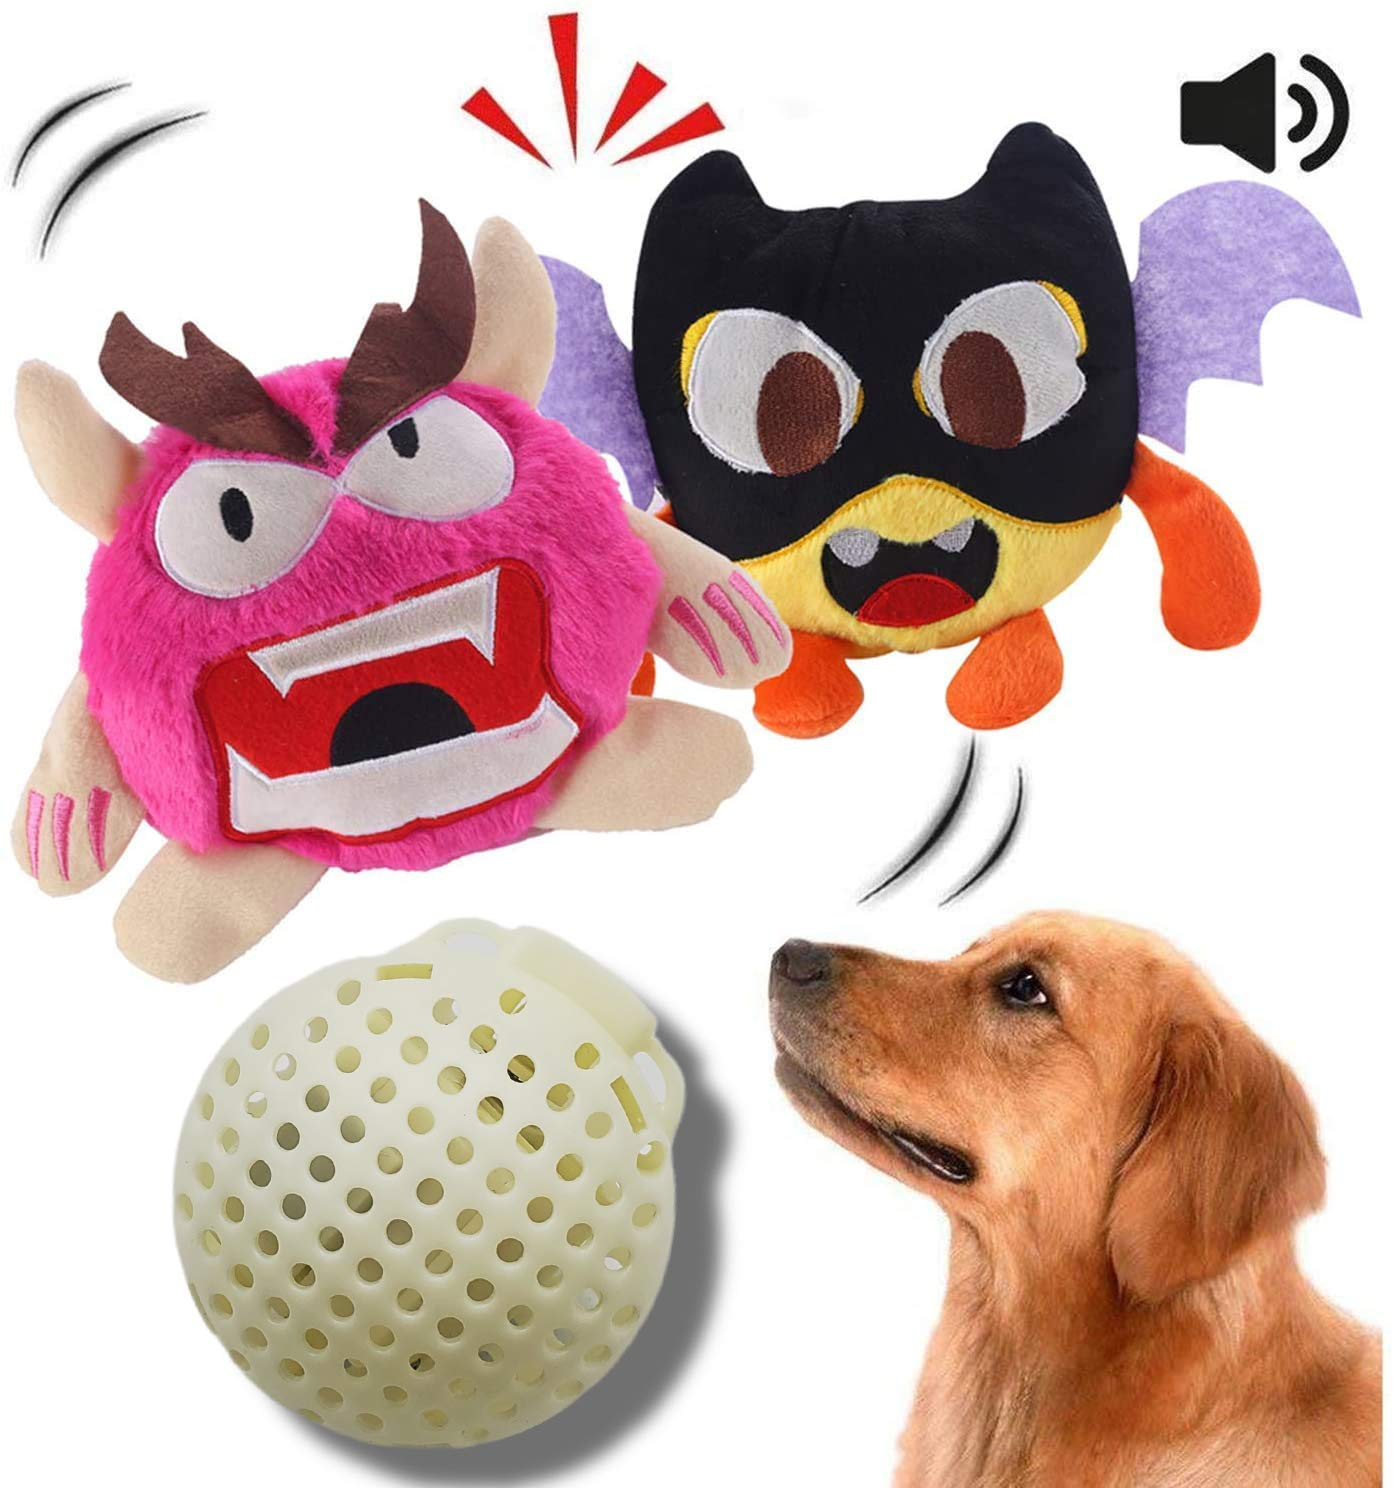 NEILDEN Upgrade Interactive Squeaky Dog Toys Plush Puppy Chew Toys Giggle Dog Balls Durable for Tug and Fetch Pet Toys for Small to Medium Dogs (Two Plush Toys+Squeaky Ball